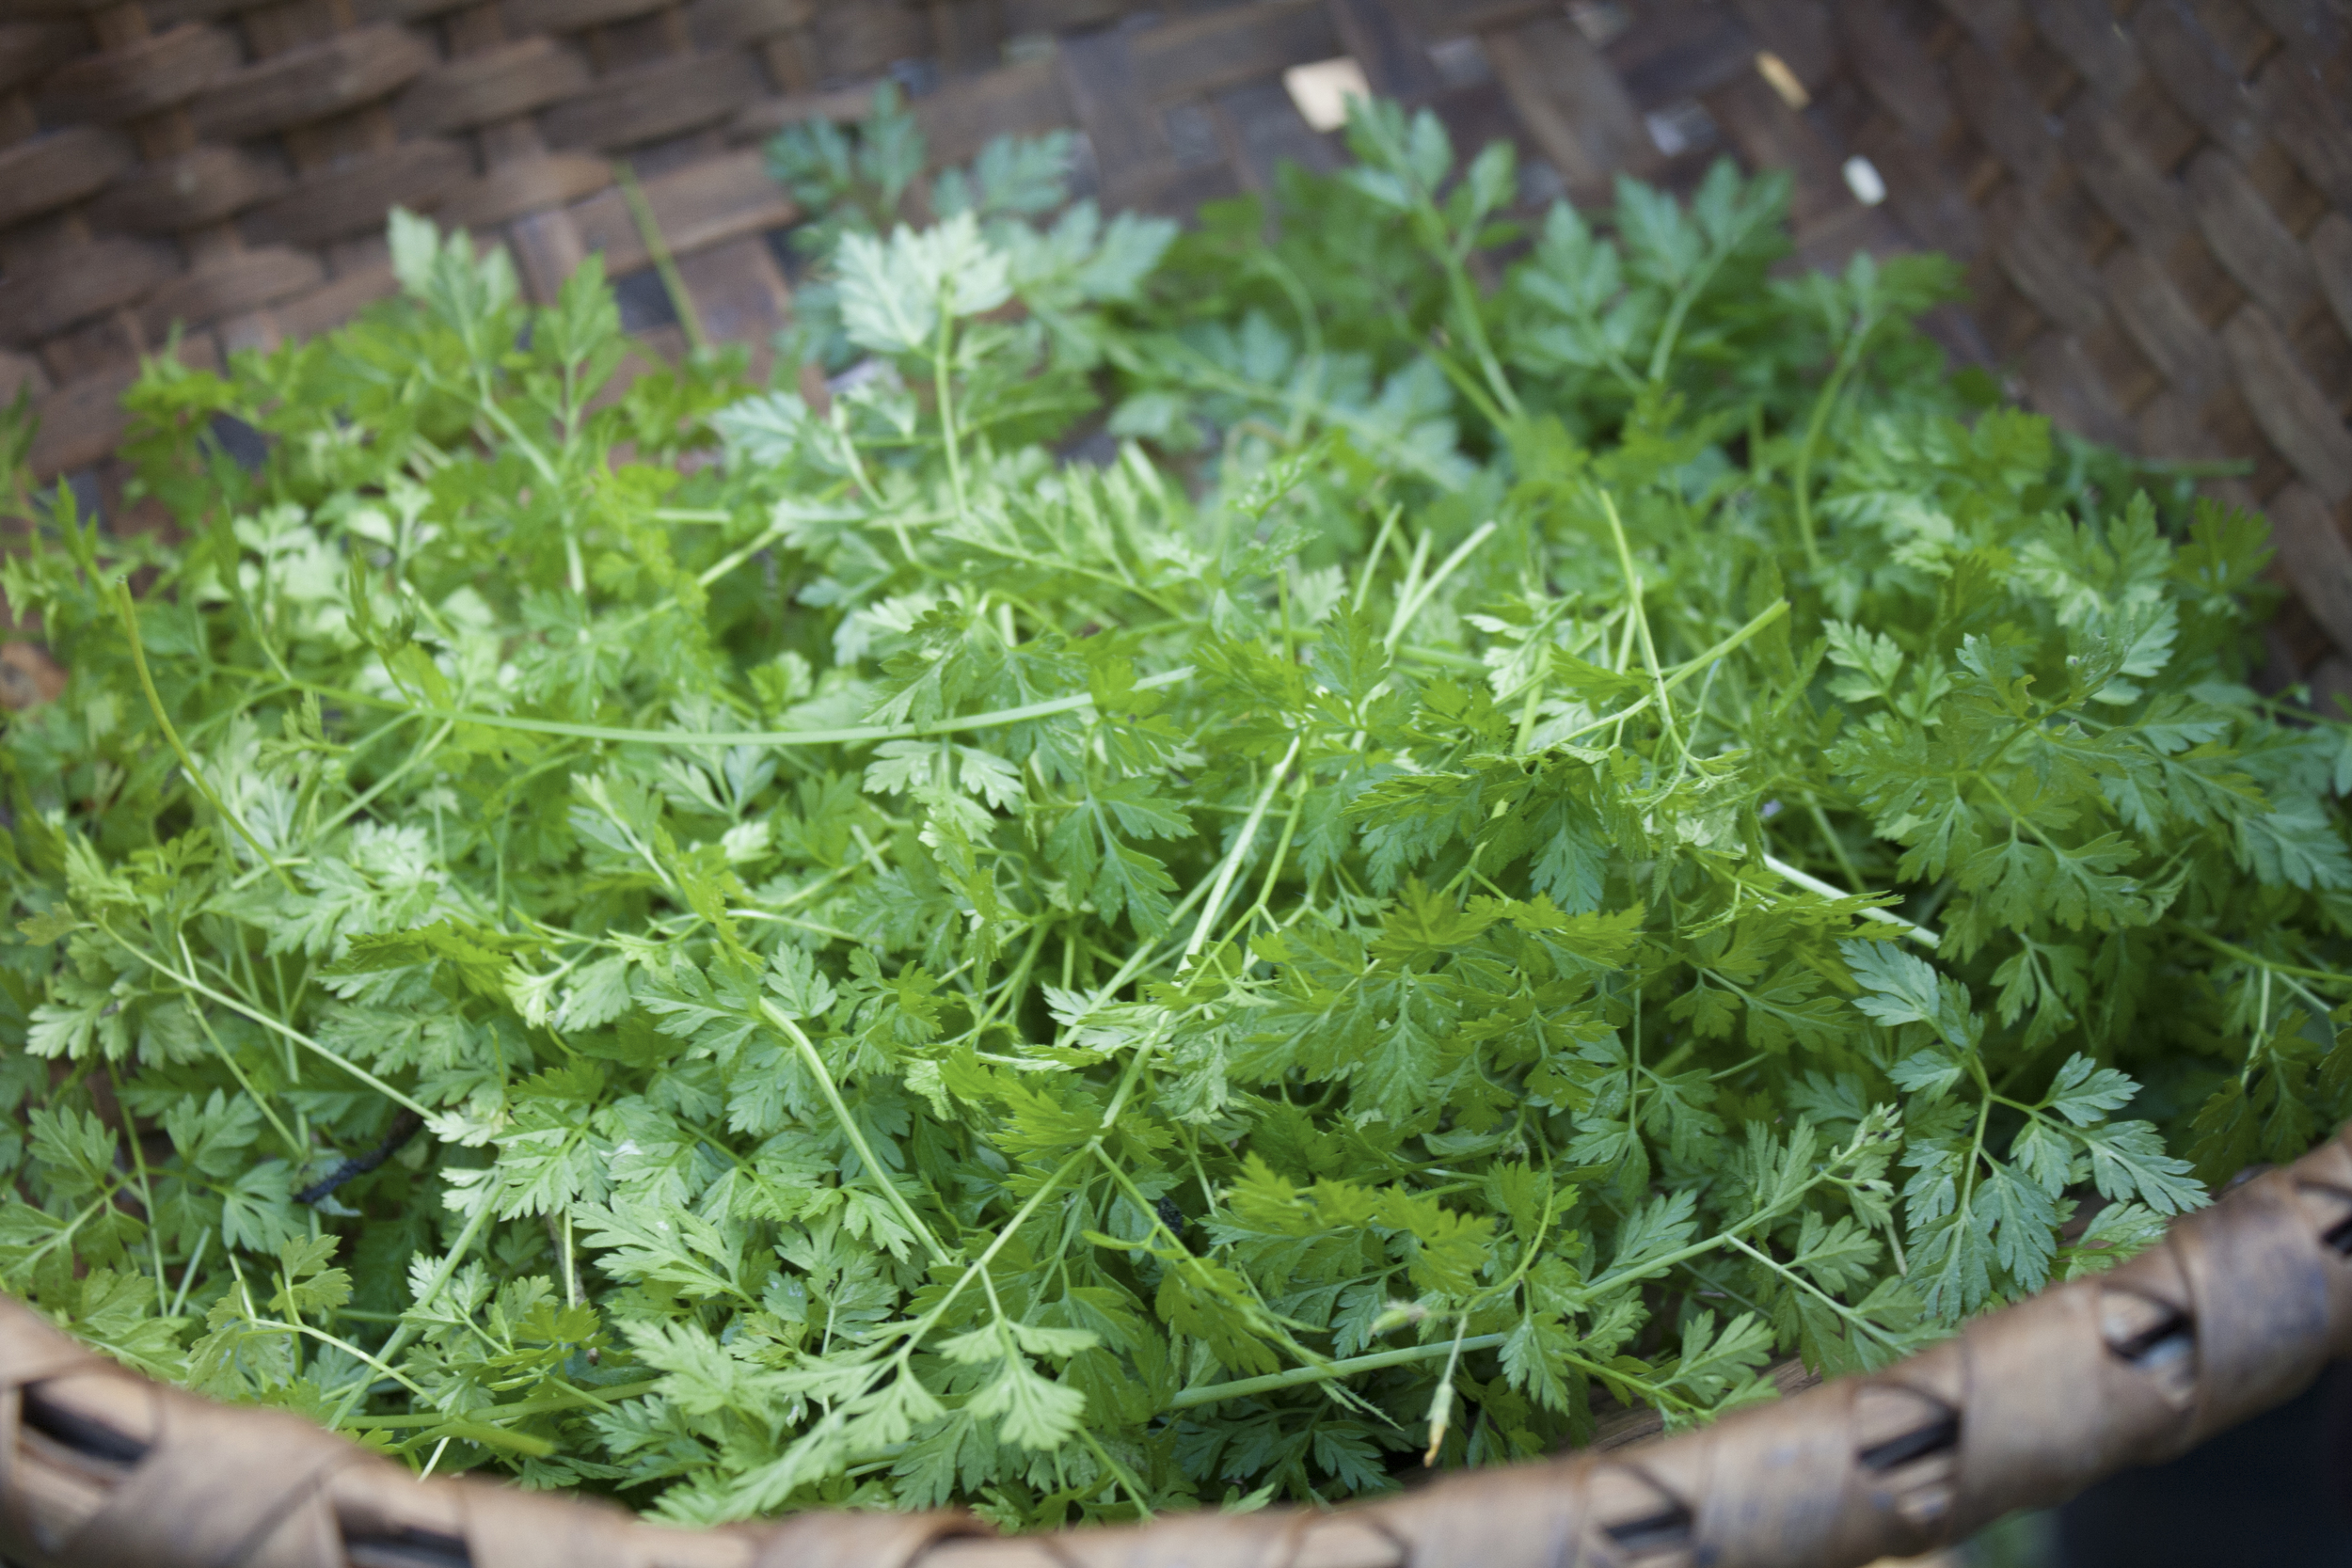 Our final basketful of beautiful chervil! A member of the parsley family, chervil will brighten our meal and aid digestion.